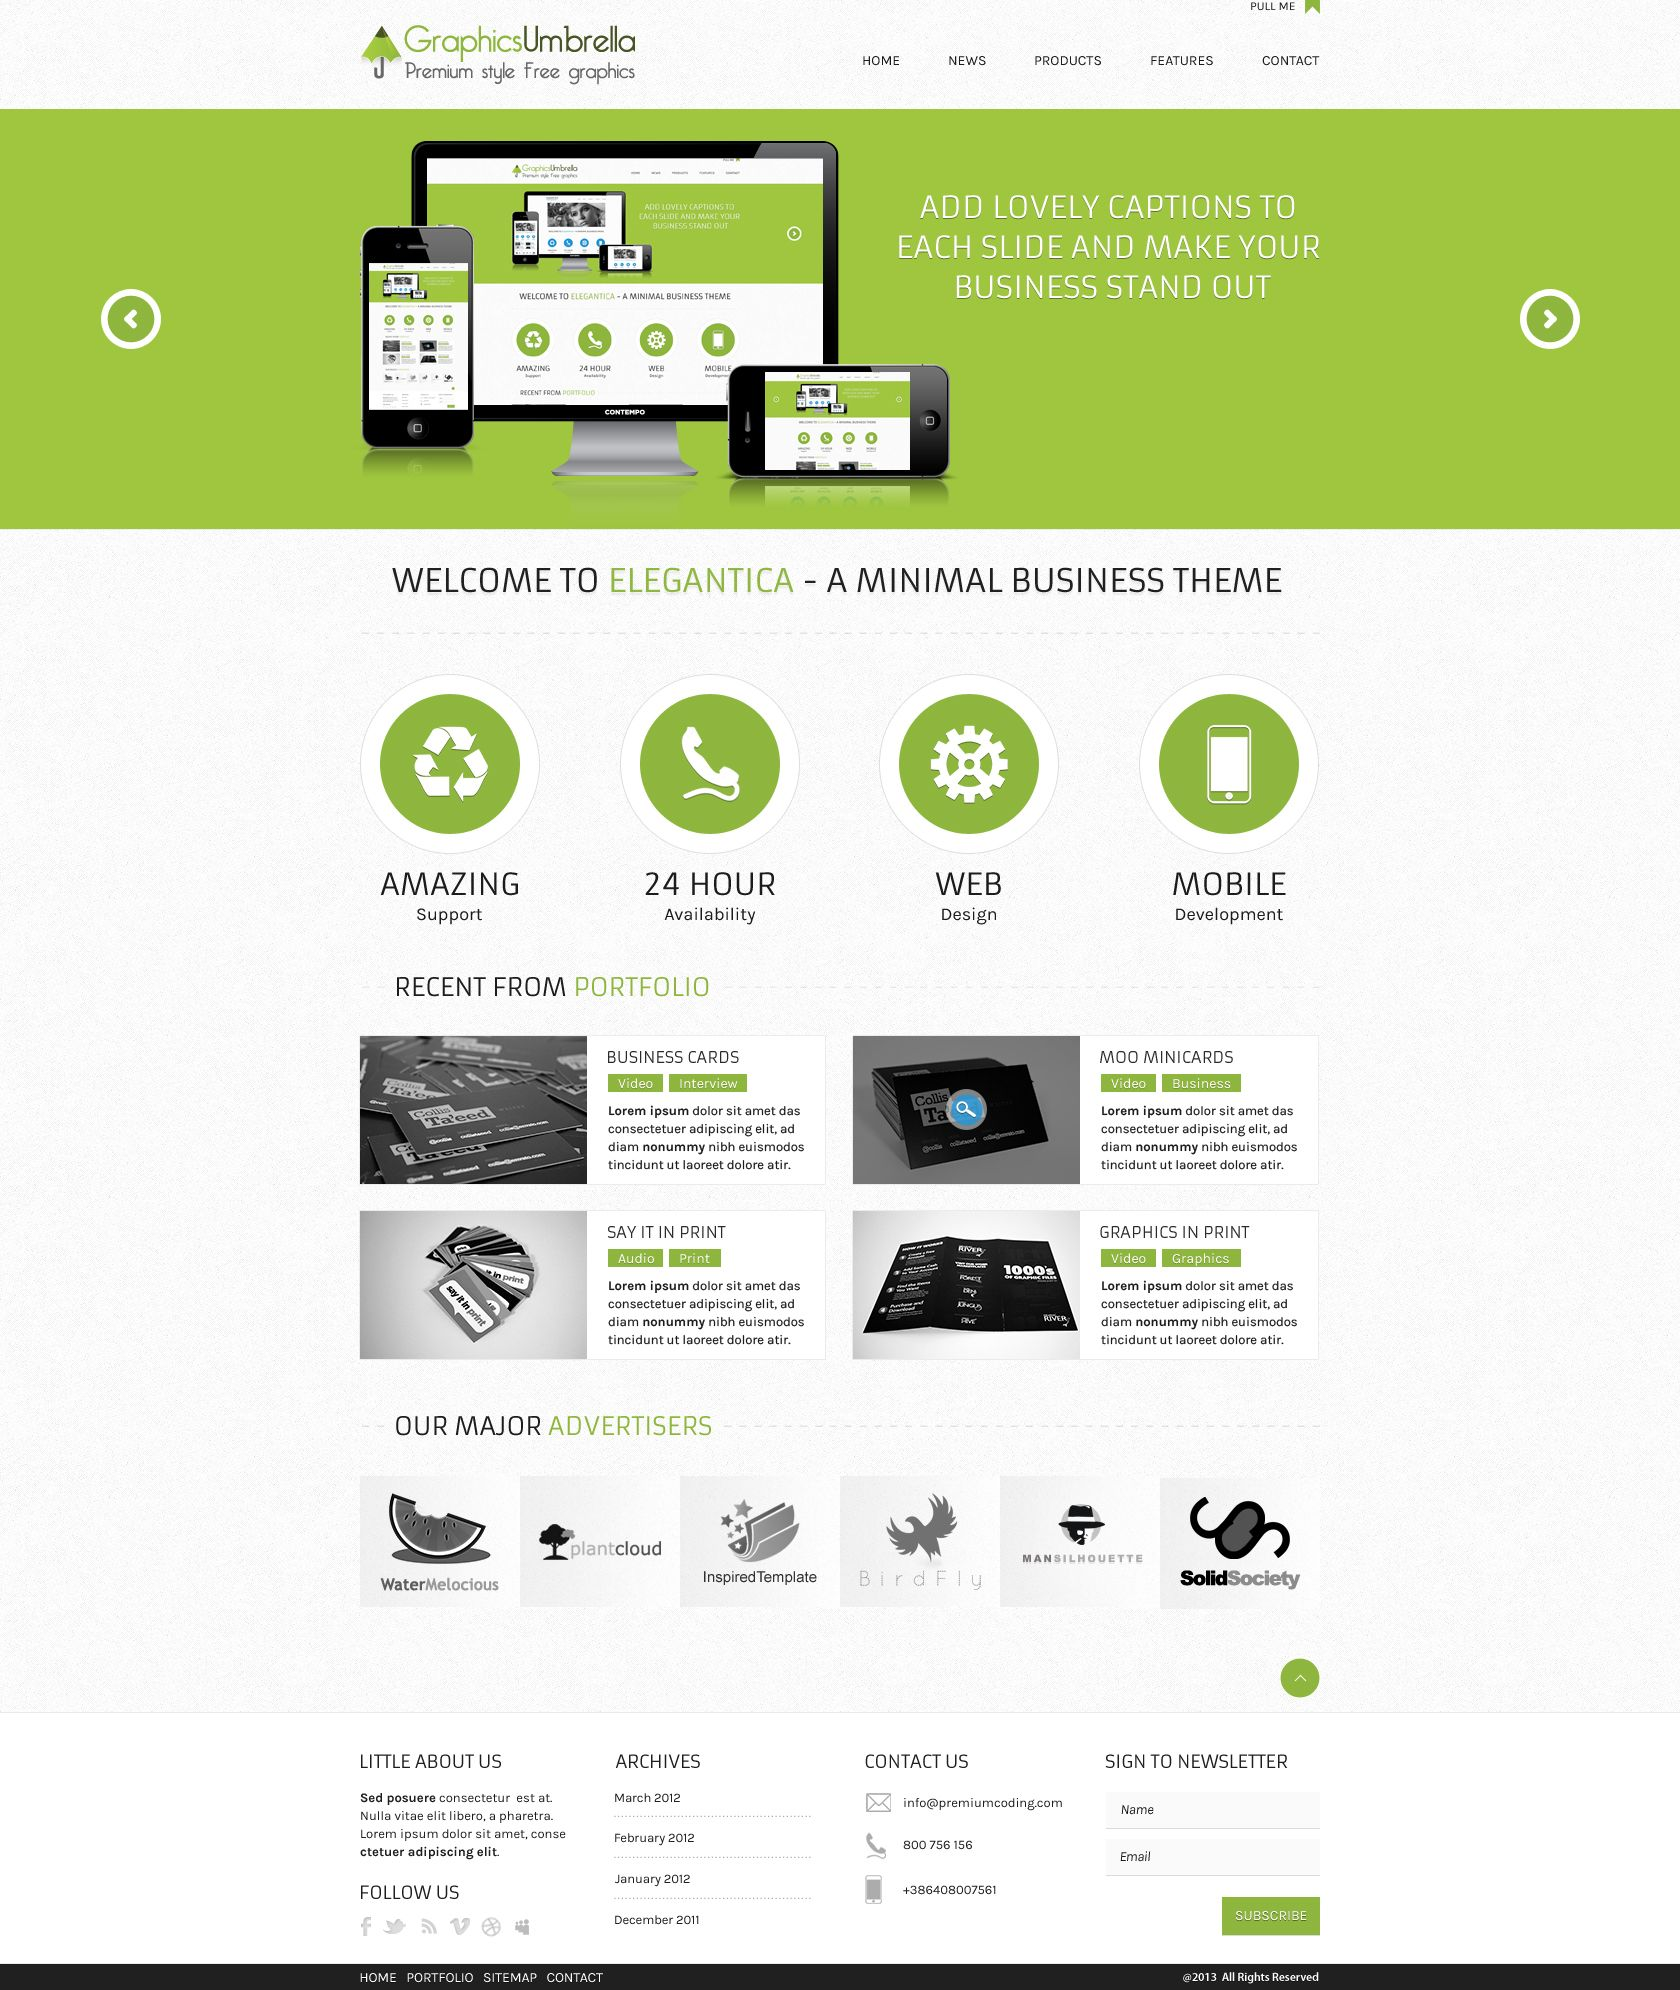 PSD CORPORATE BUSINESS WEBSITE TEMPLATE FREE DOWNLOAD